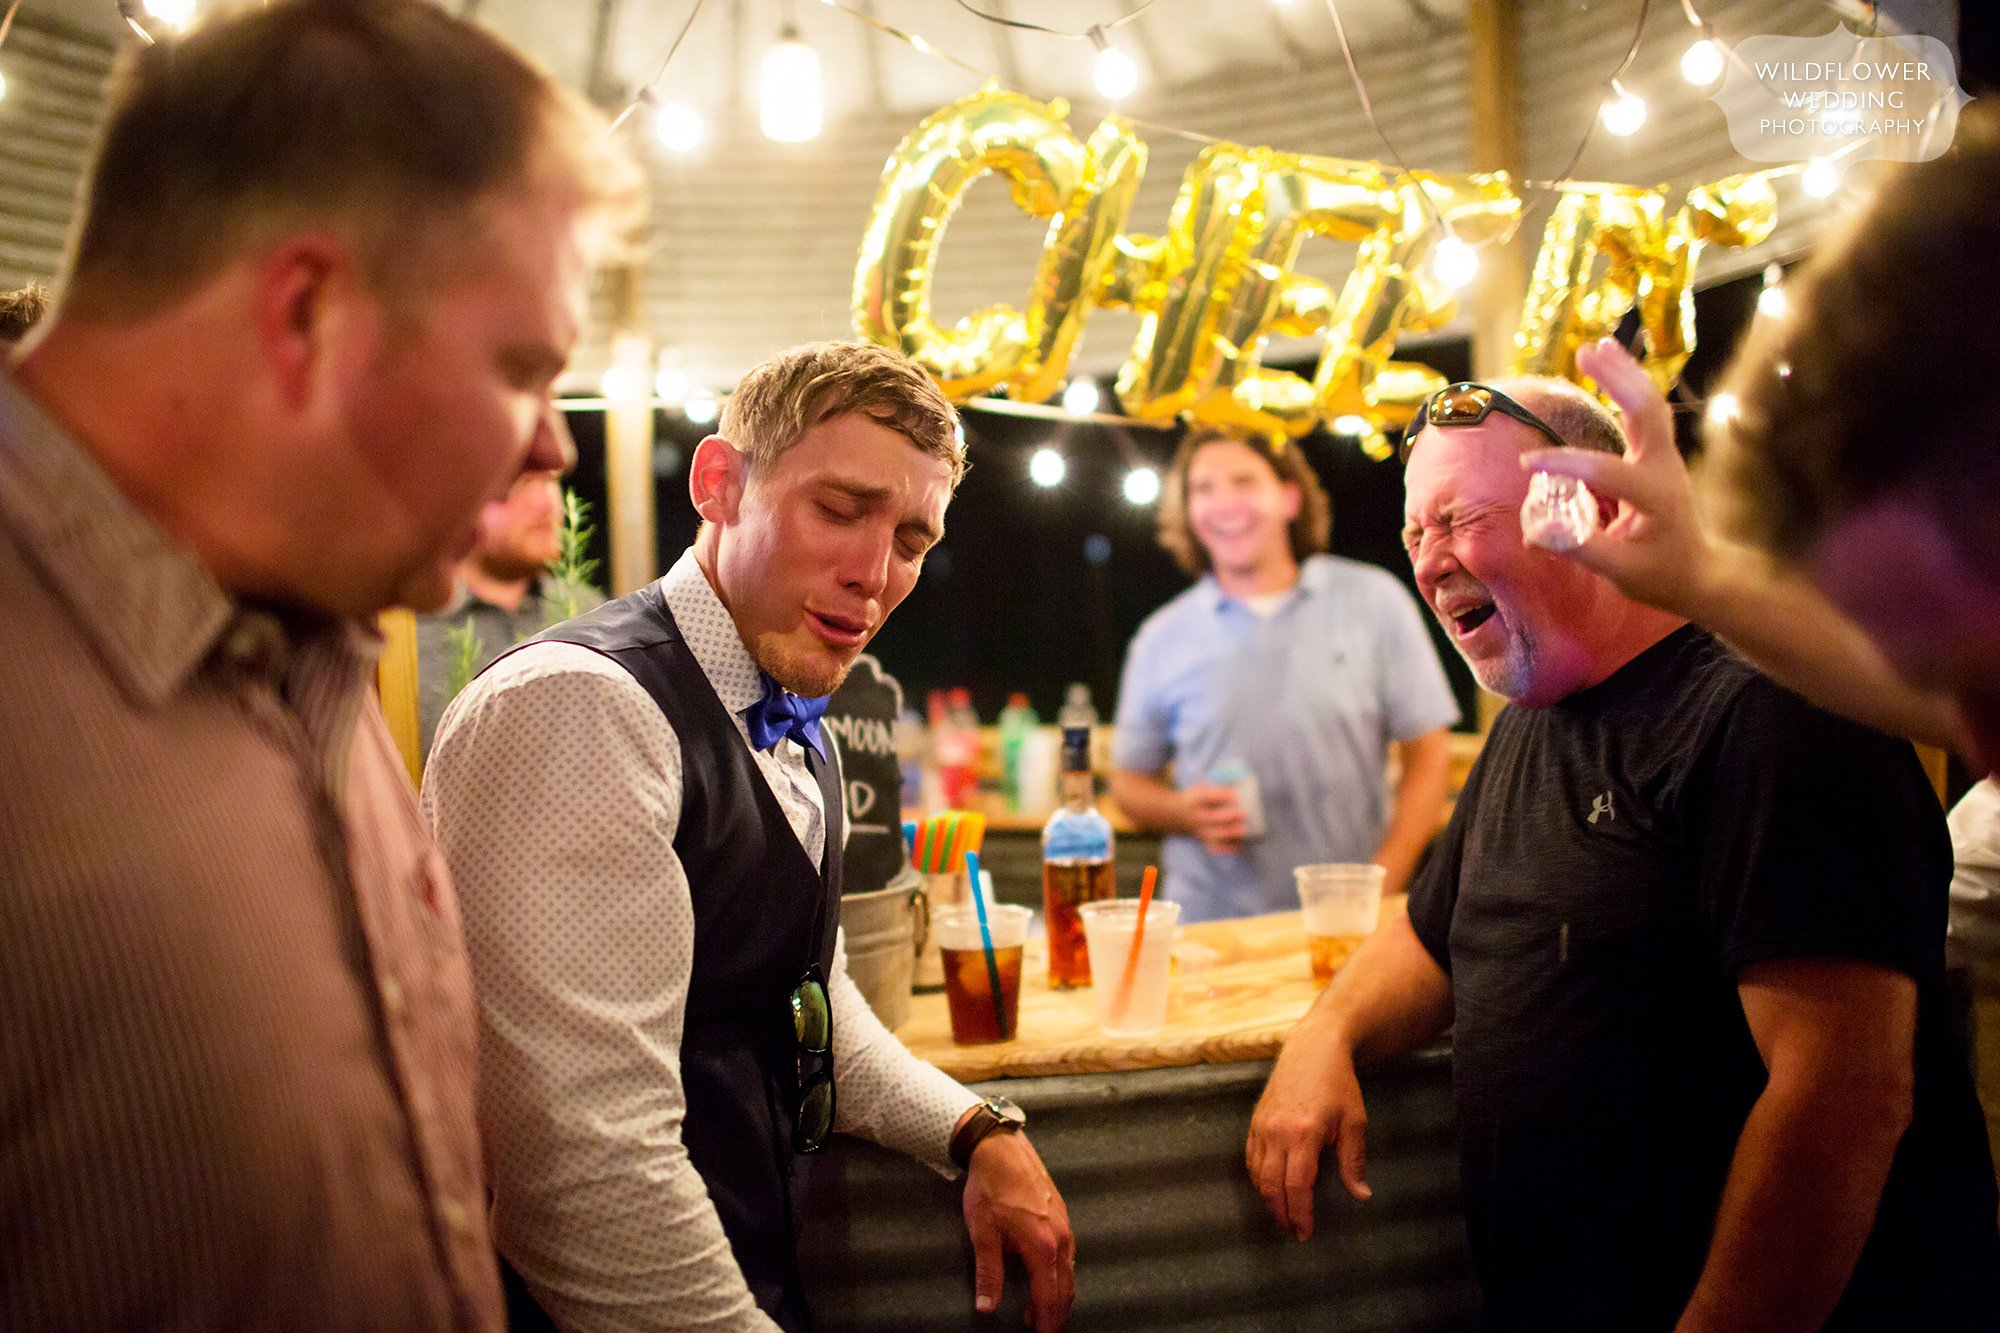 Hilarious photos of faces after doing alcohol shots at the silo bar at this country wedding in MO.